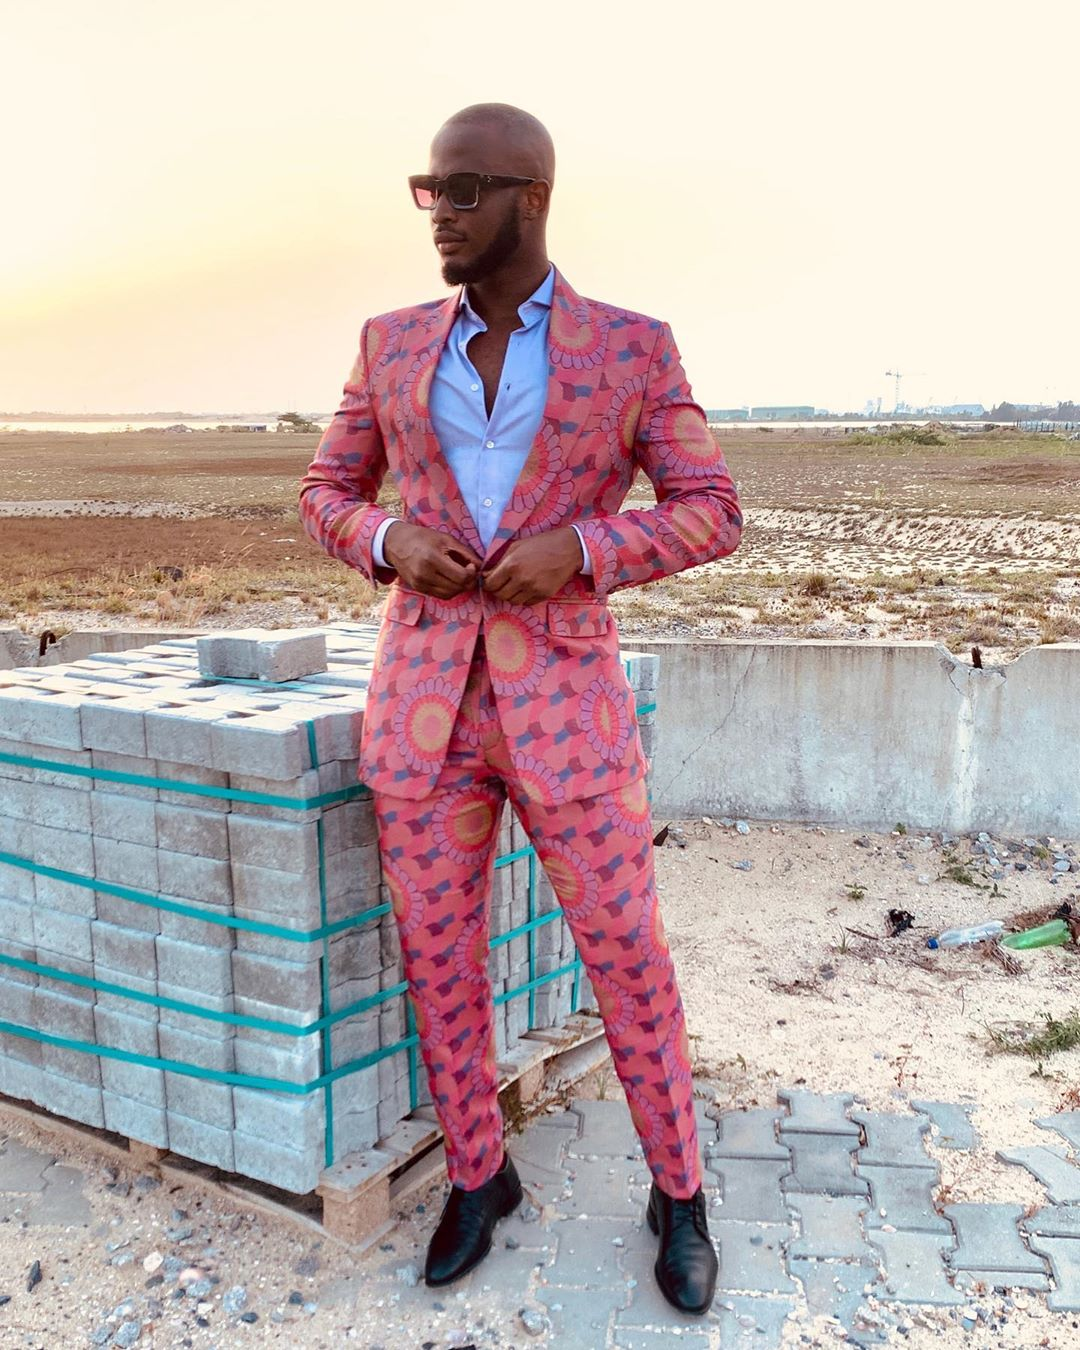 african-male-celebrities-most-fashionable-stylish-celebrities-style-fashion-across-africa-style-rave